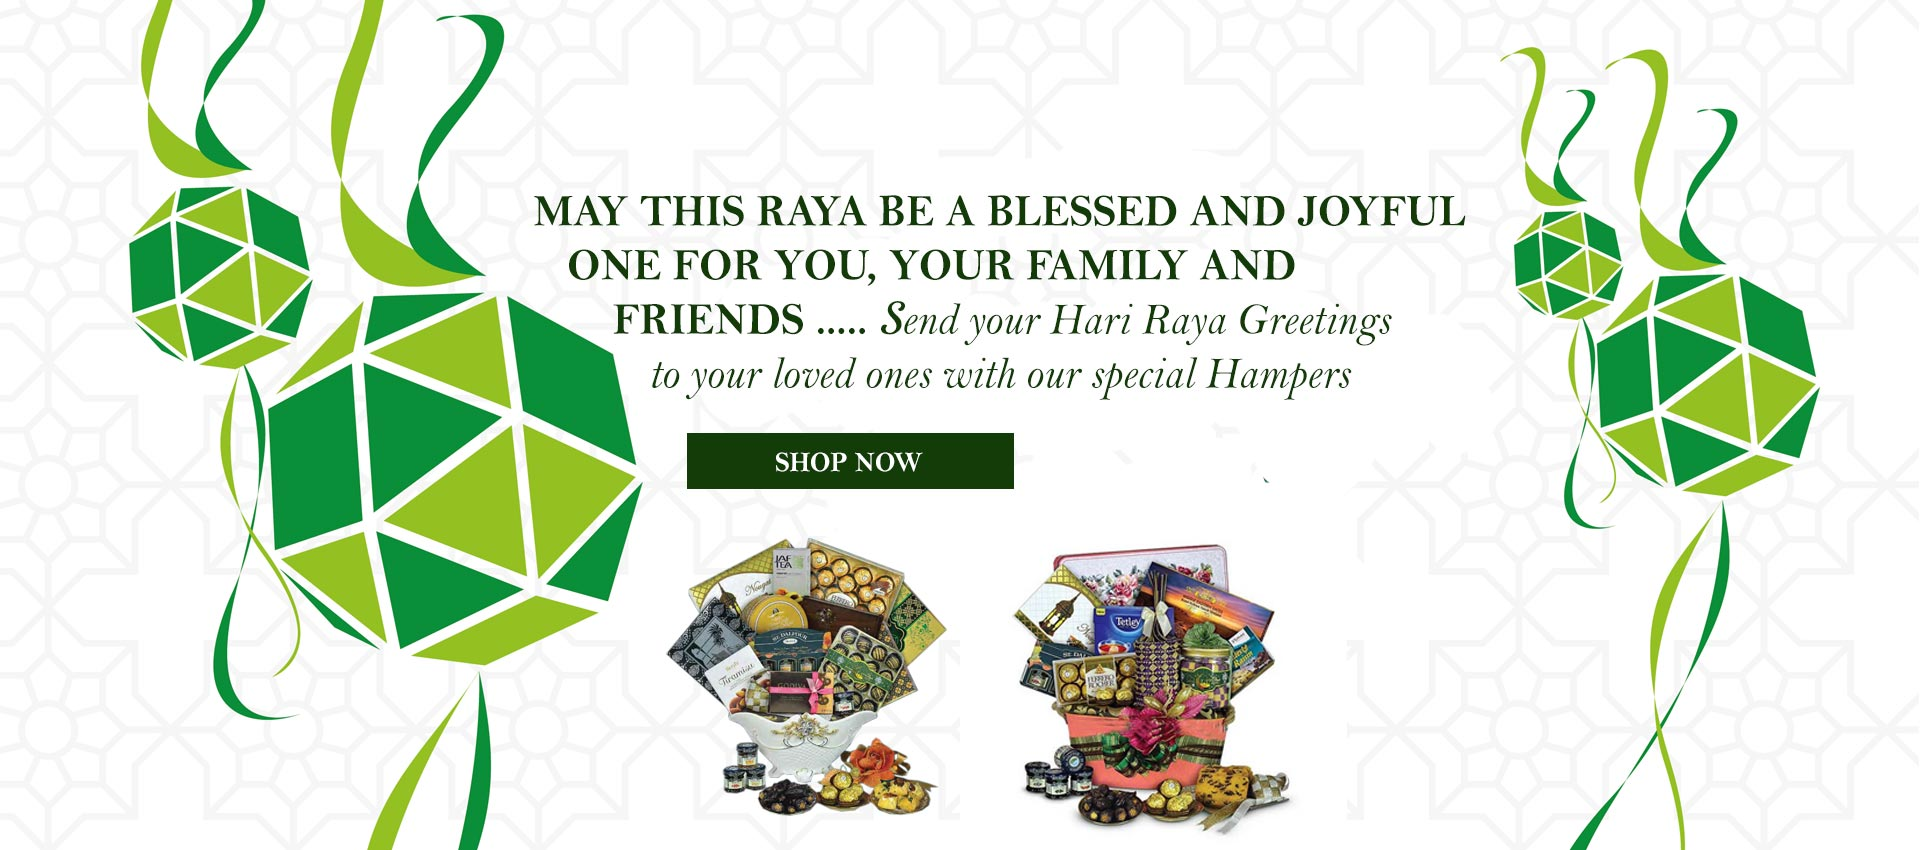 Send your raya greetings to your love ones, friends & business associates.